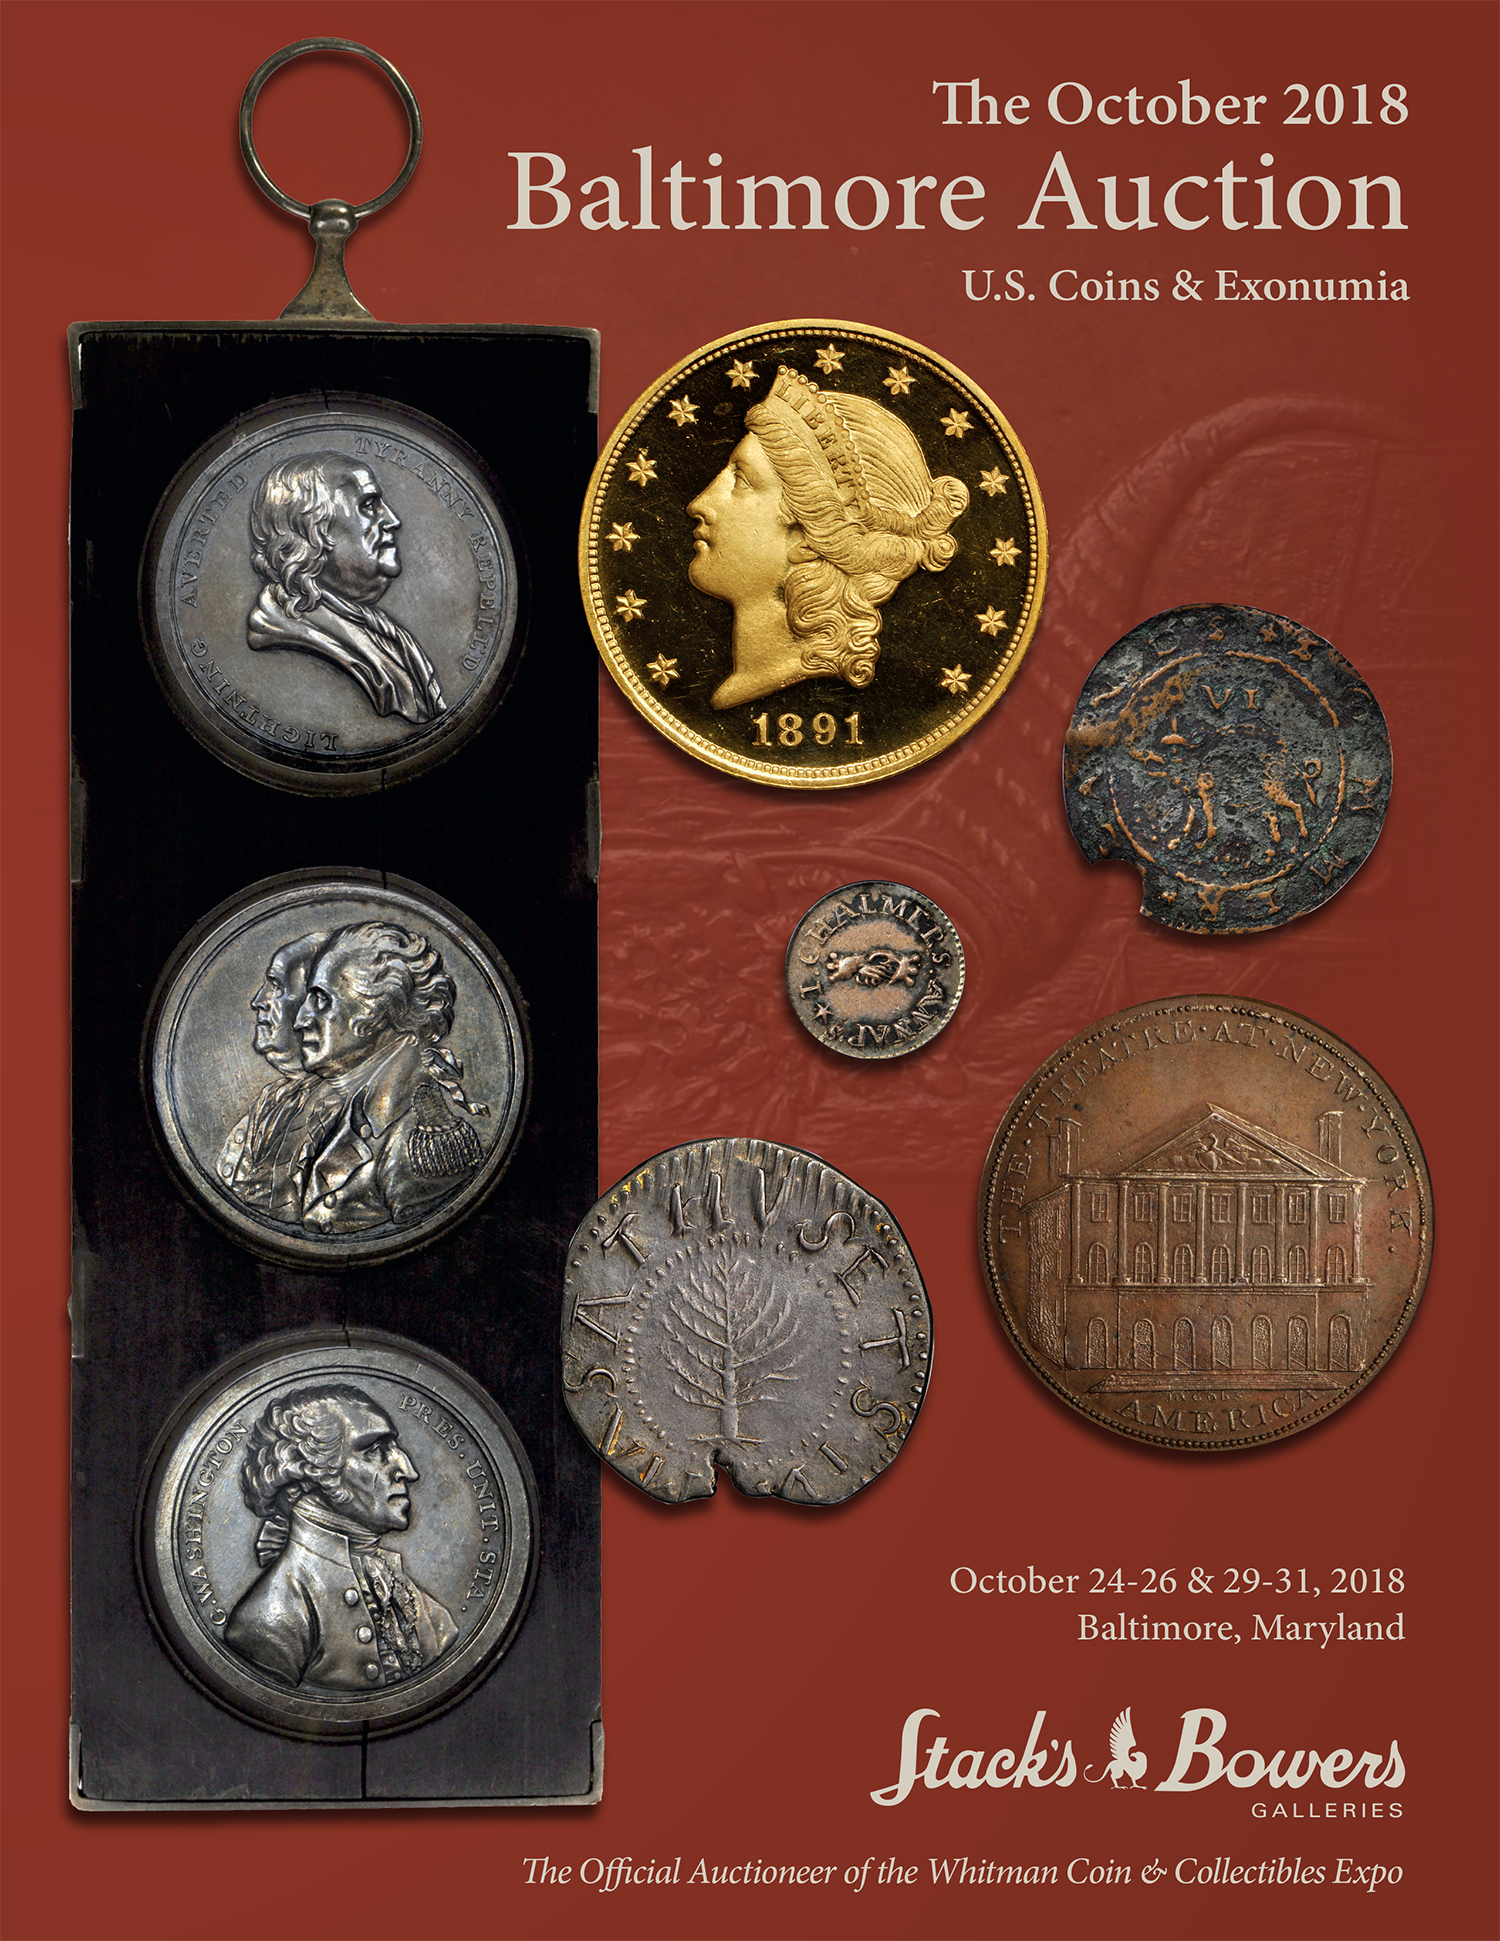 The October 2018 Baltimore Auction U.S. Coins & Exonumia